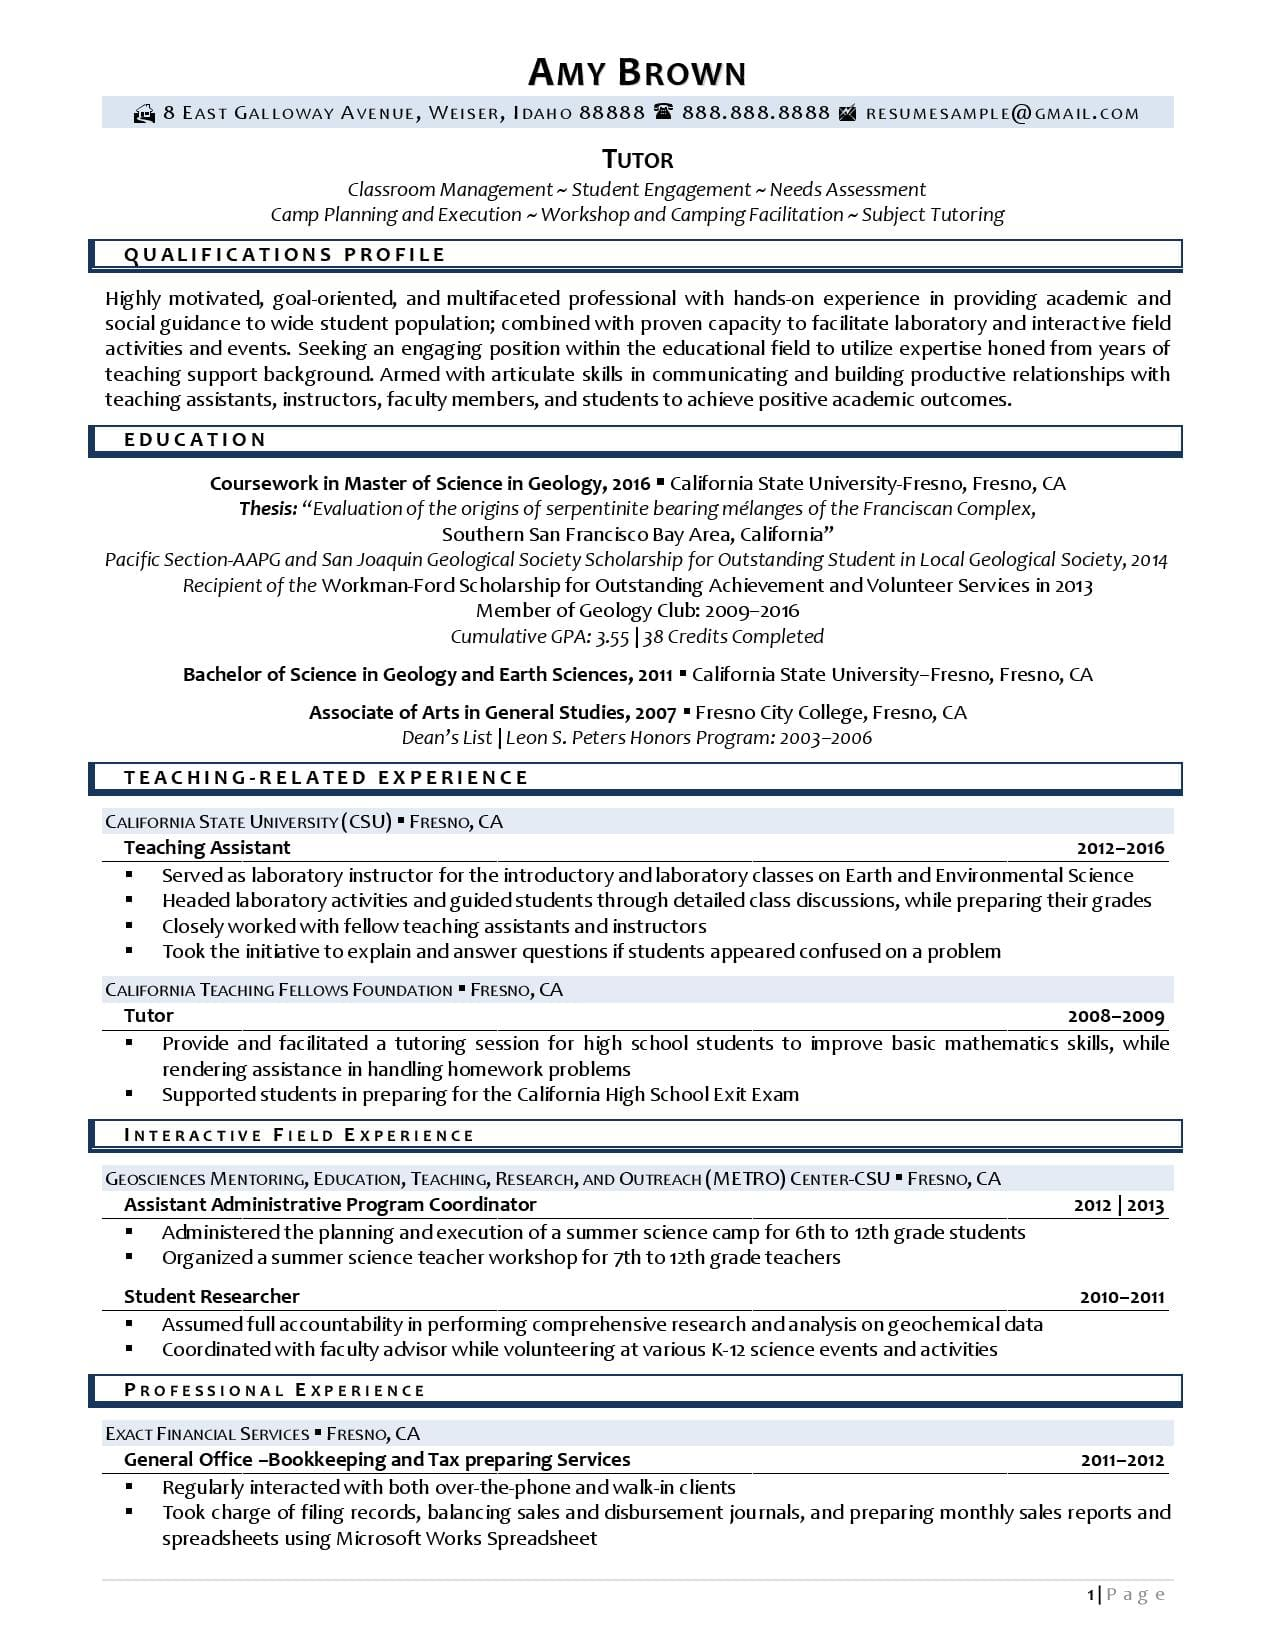 A tutor resume sample with tutoring experience description page 1